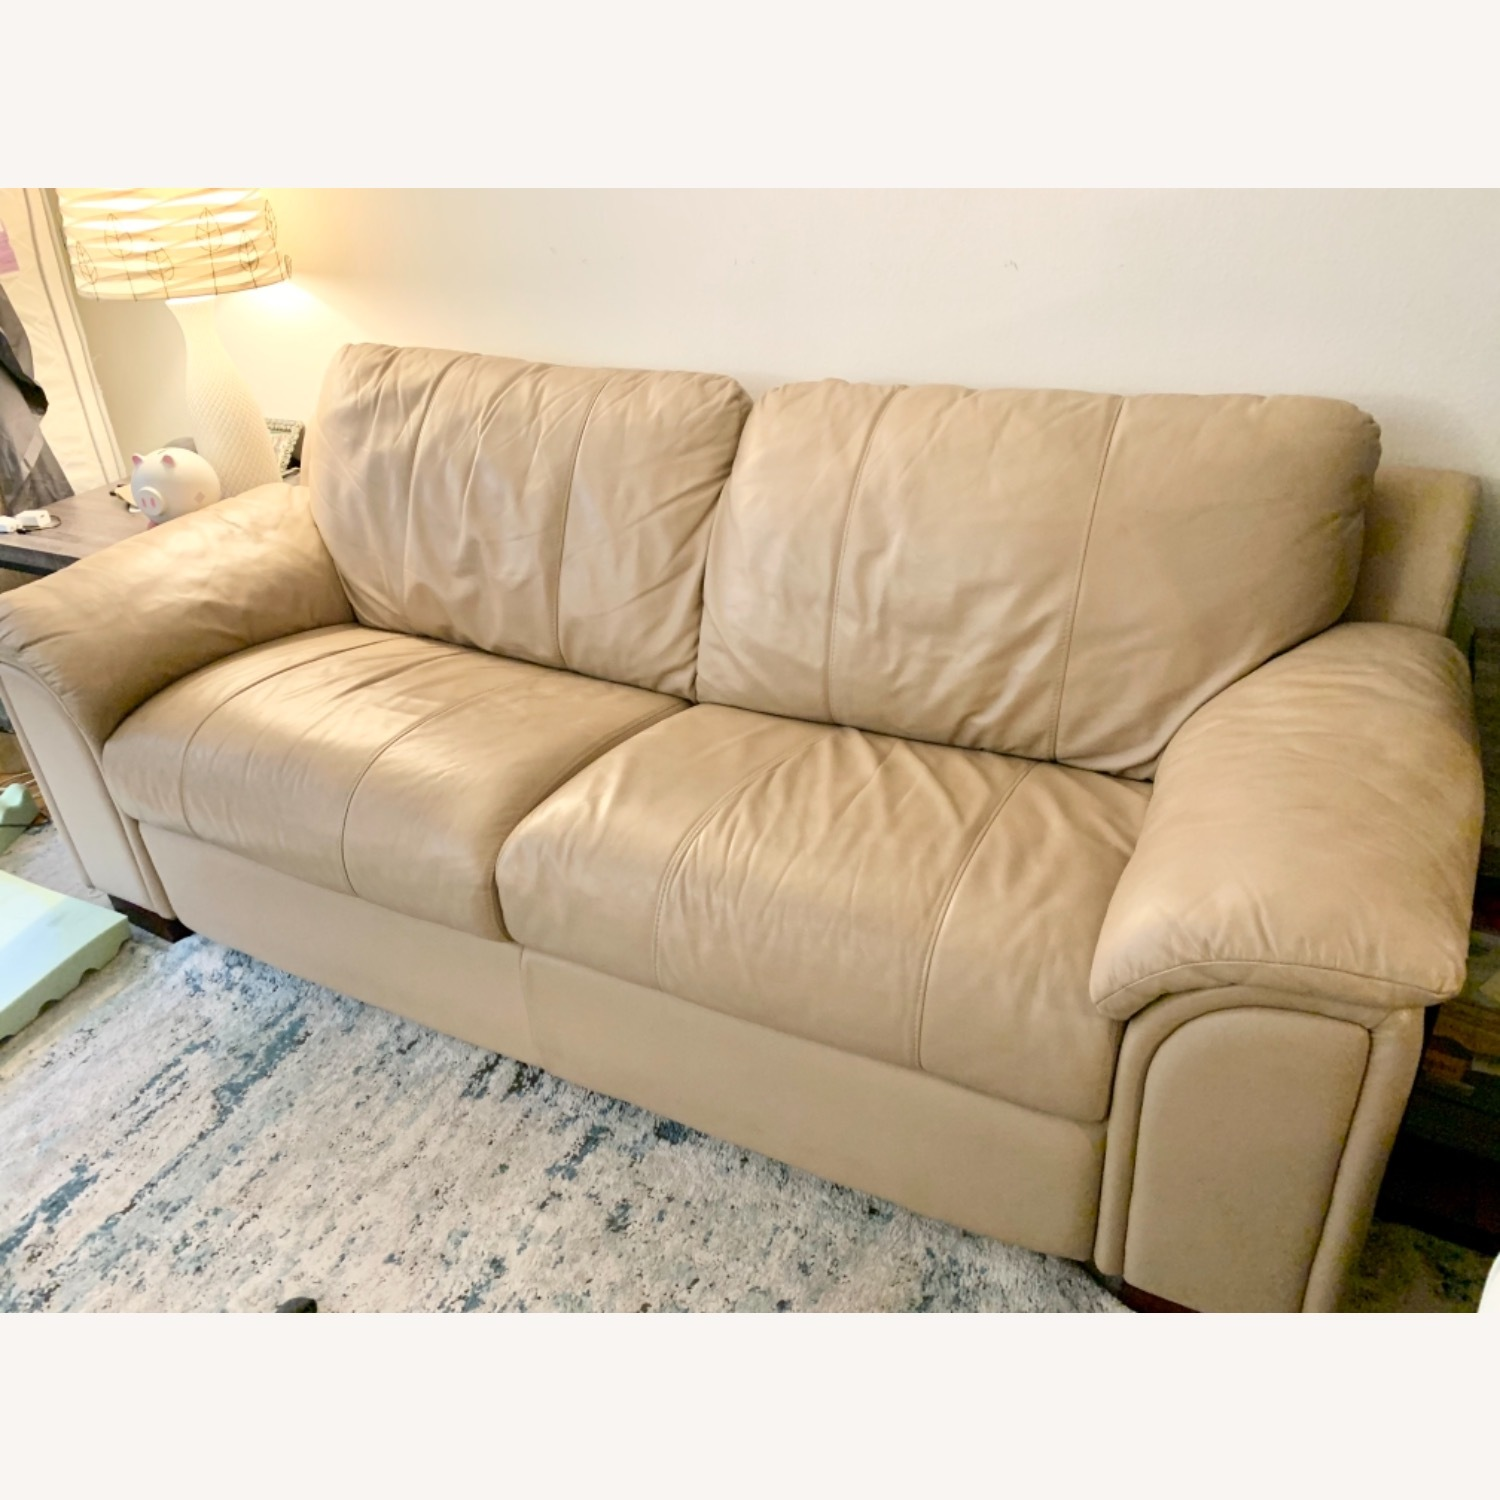 American Leather Pull Out Sleeper Sofa - image-1